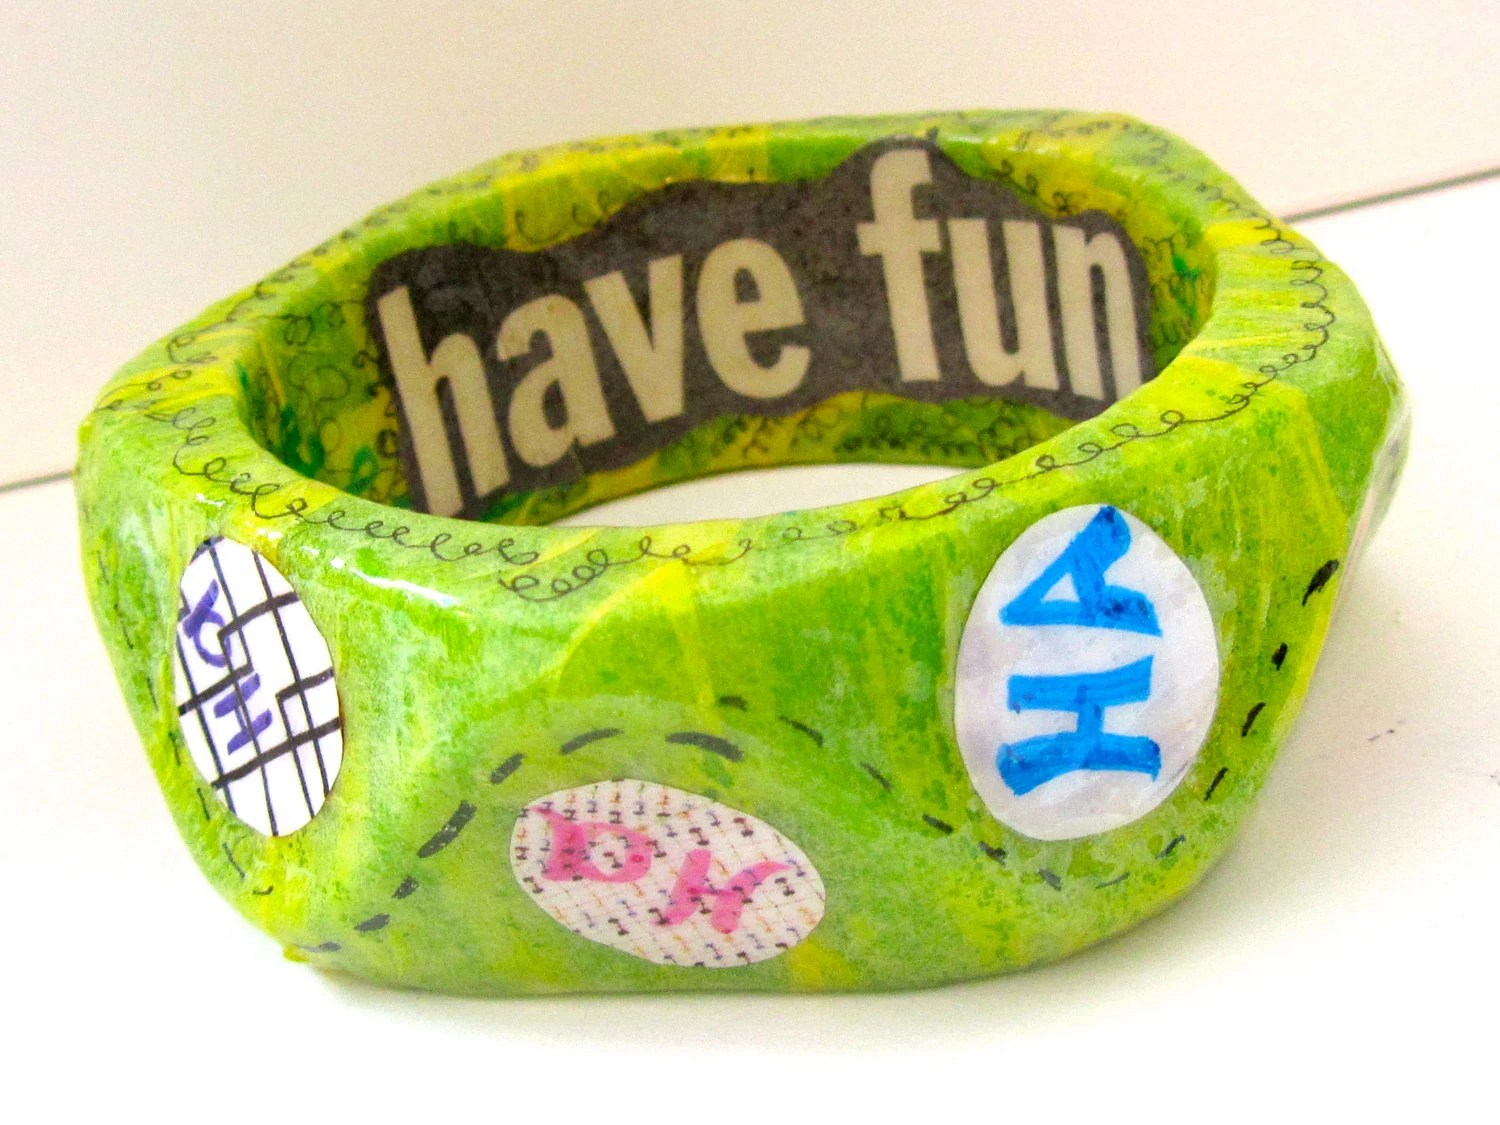 Chunky Green Bracelet - The Laughing Bangle Bracelet - Decoupage Paper Jewelry - happy, silly, Dr. Seuss